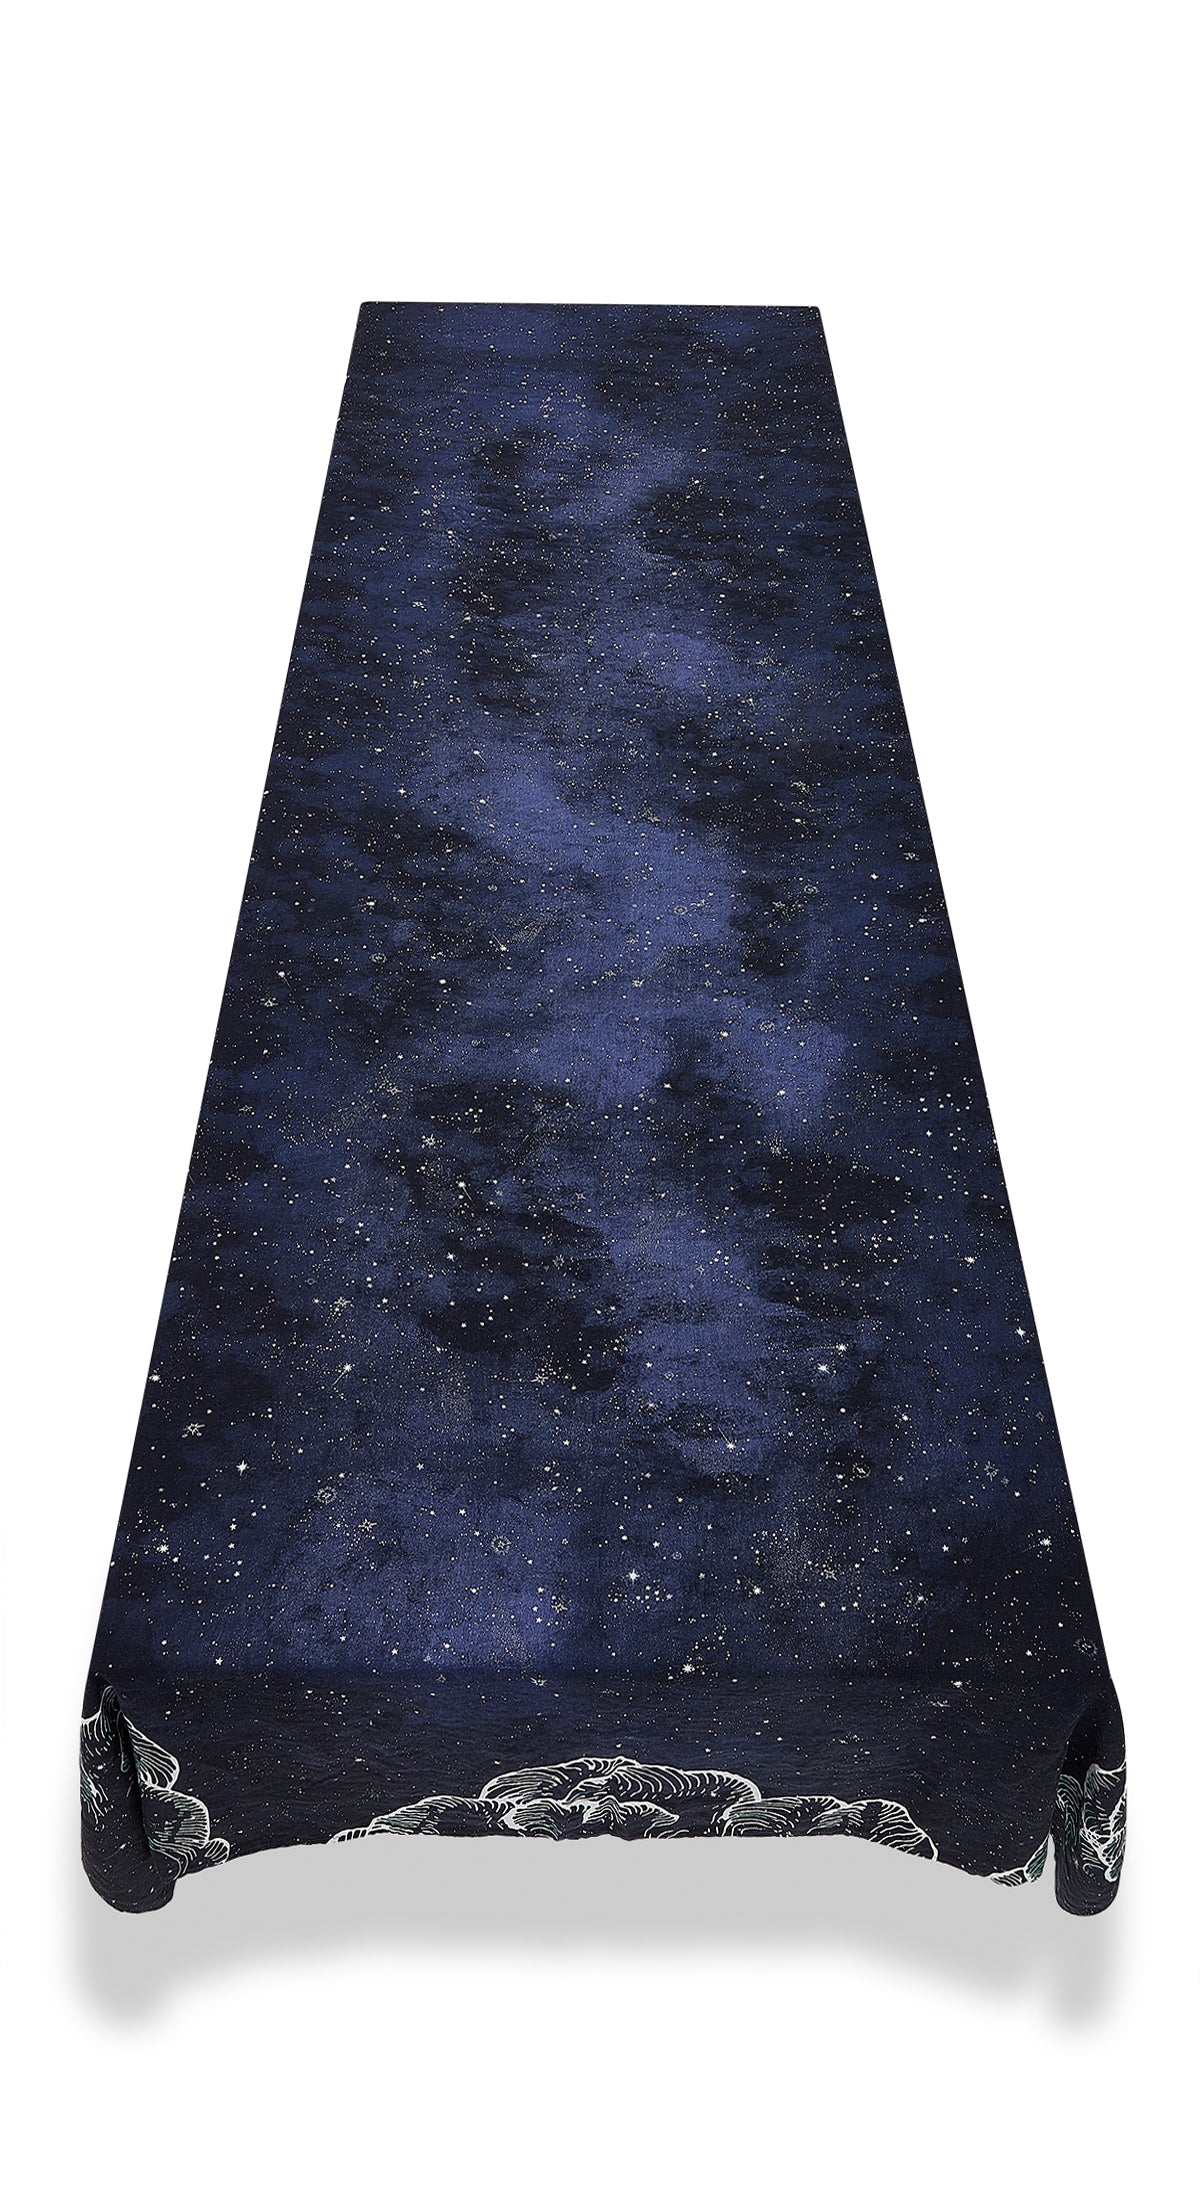 Constellation Linen Tablecloth in Cosmic Blue